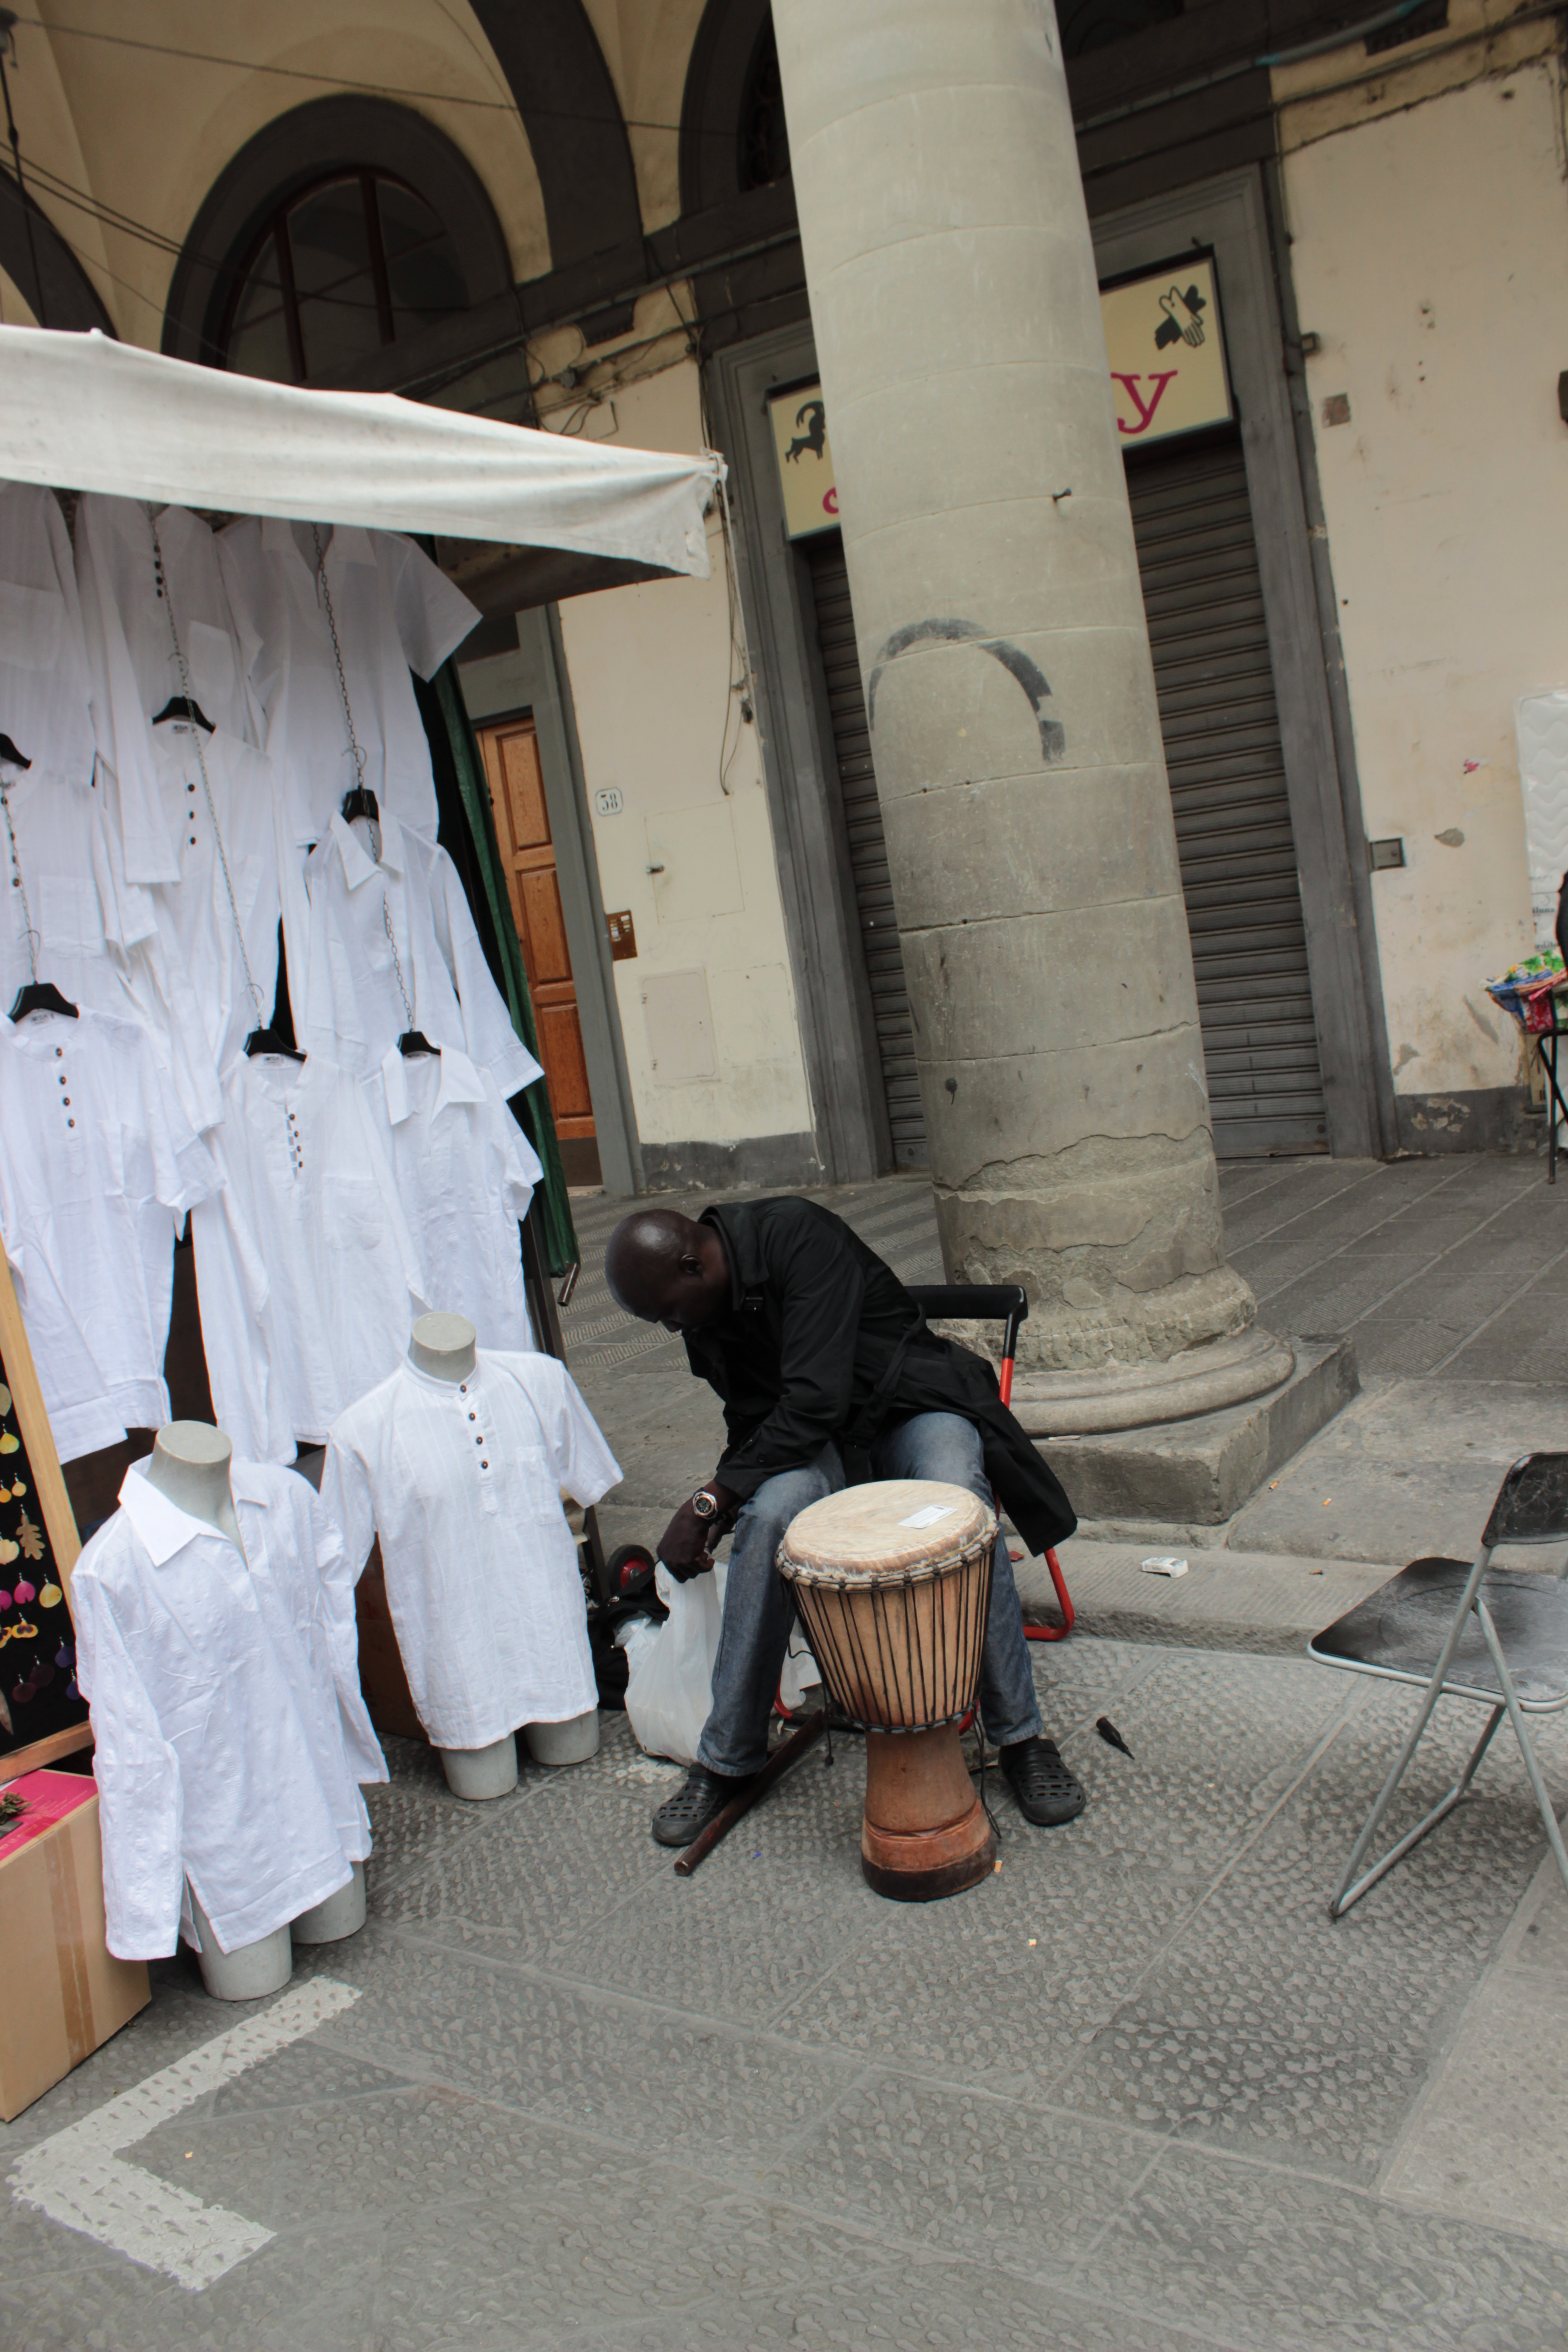 Street vendor on the streets of Florence